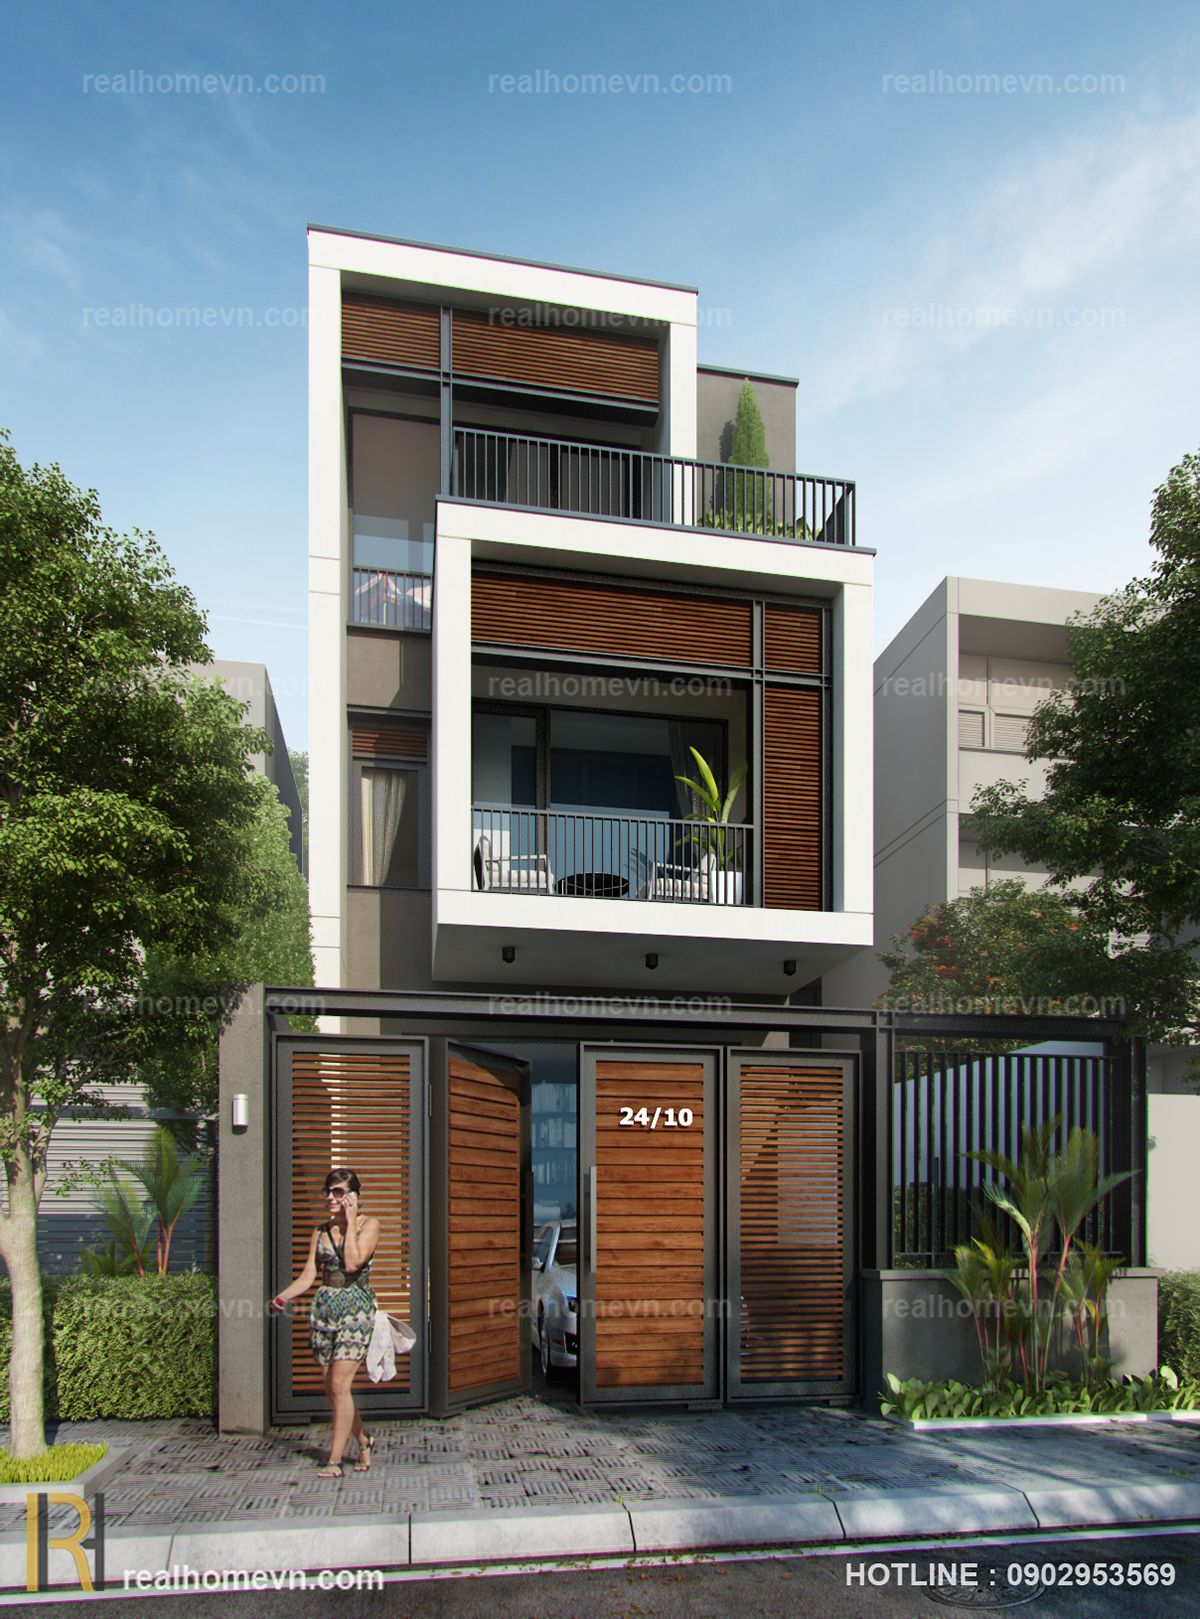 Box houses tiny house elevation facade modern architecture also hsang  on pinterest rh